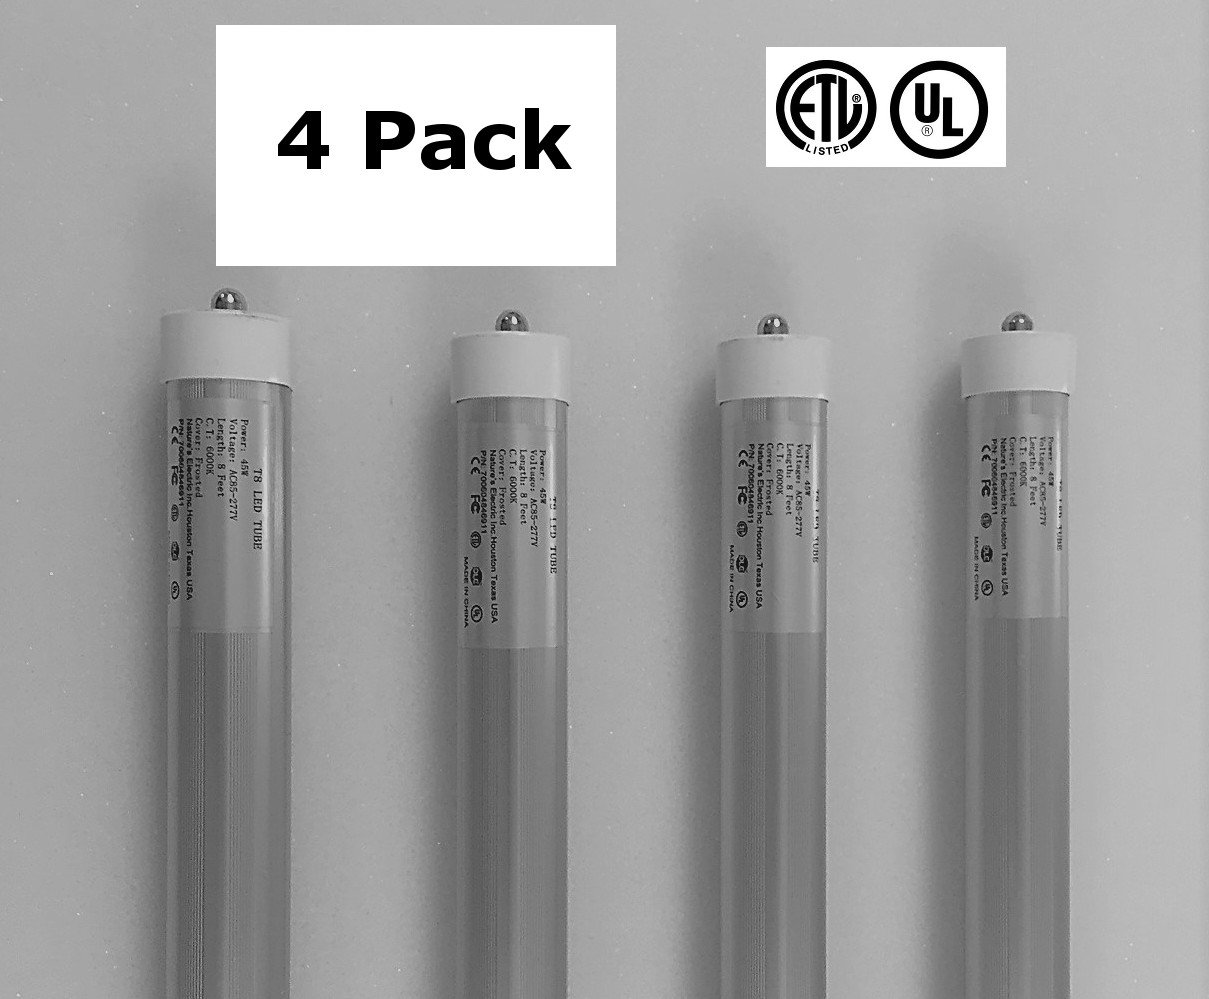 4 Pack of 8 Foot, LED Replacement Bulbs for Fluorescent Fixtures - neiLite  Brand - - Amazon.com